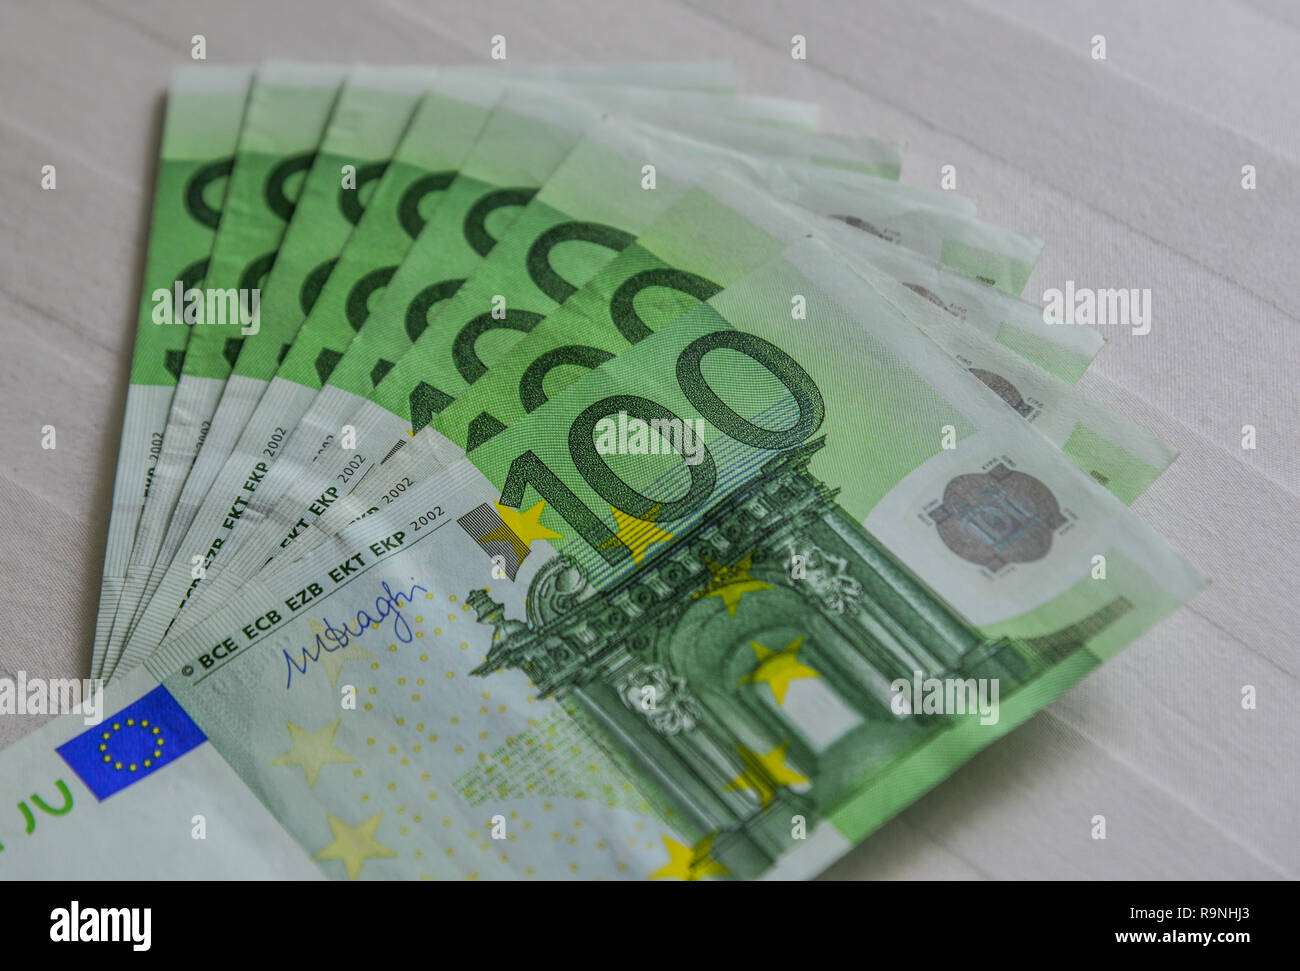 Euro billnote (EUR) background. The currency of the Euro area and institutions was issued in 2002. - Stock Image